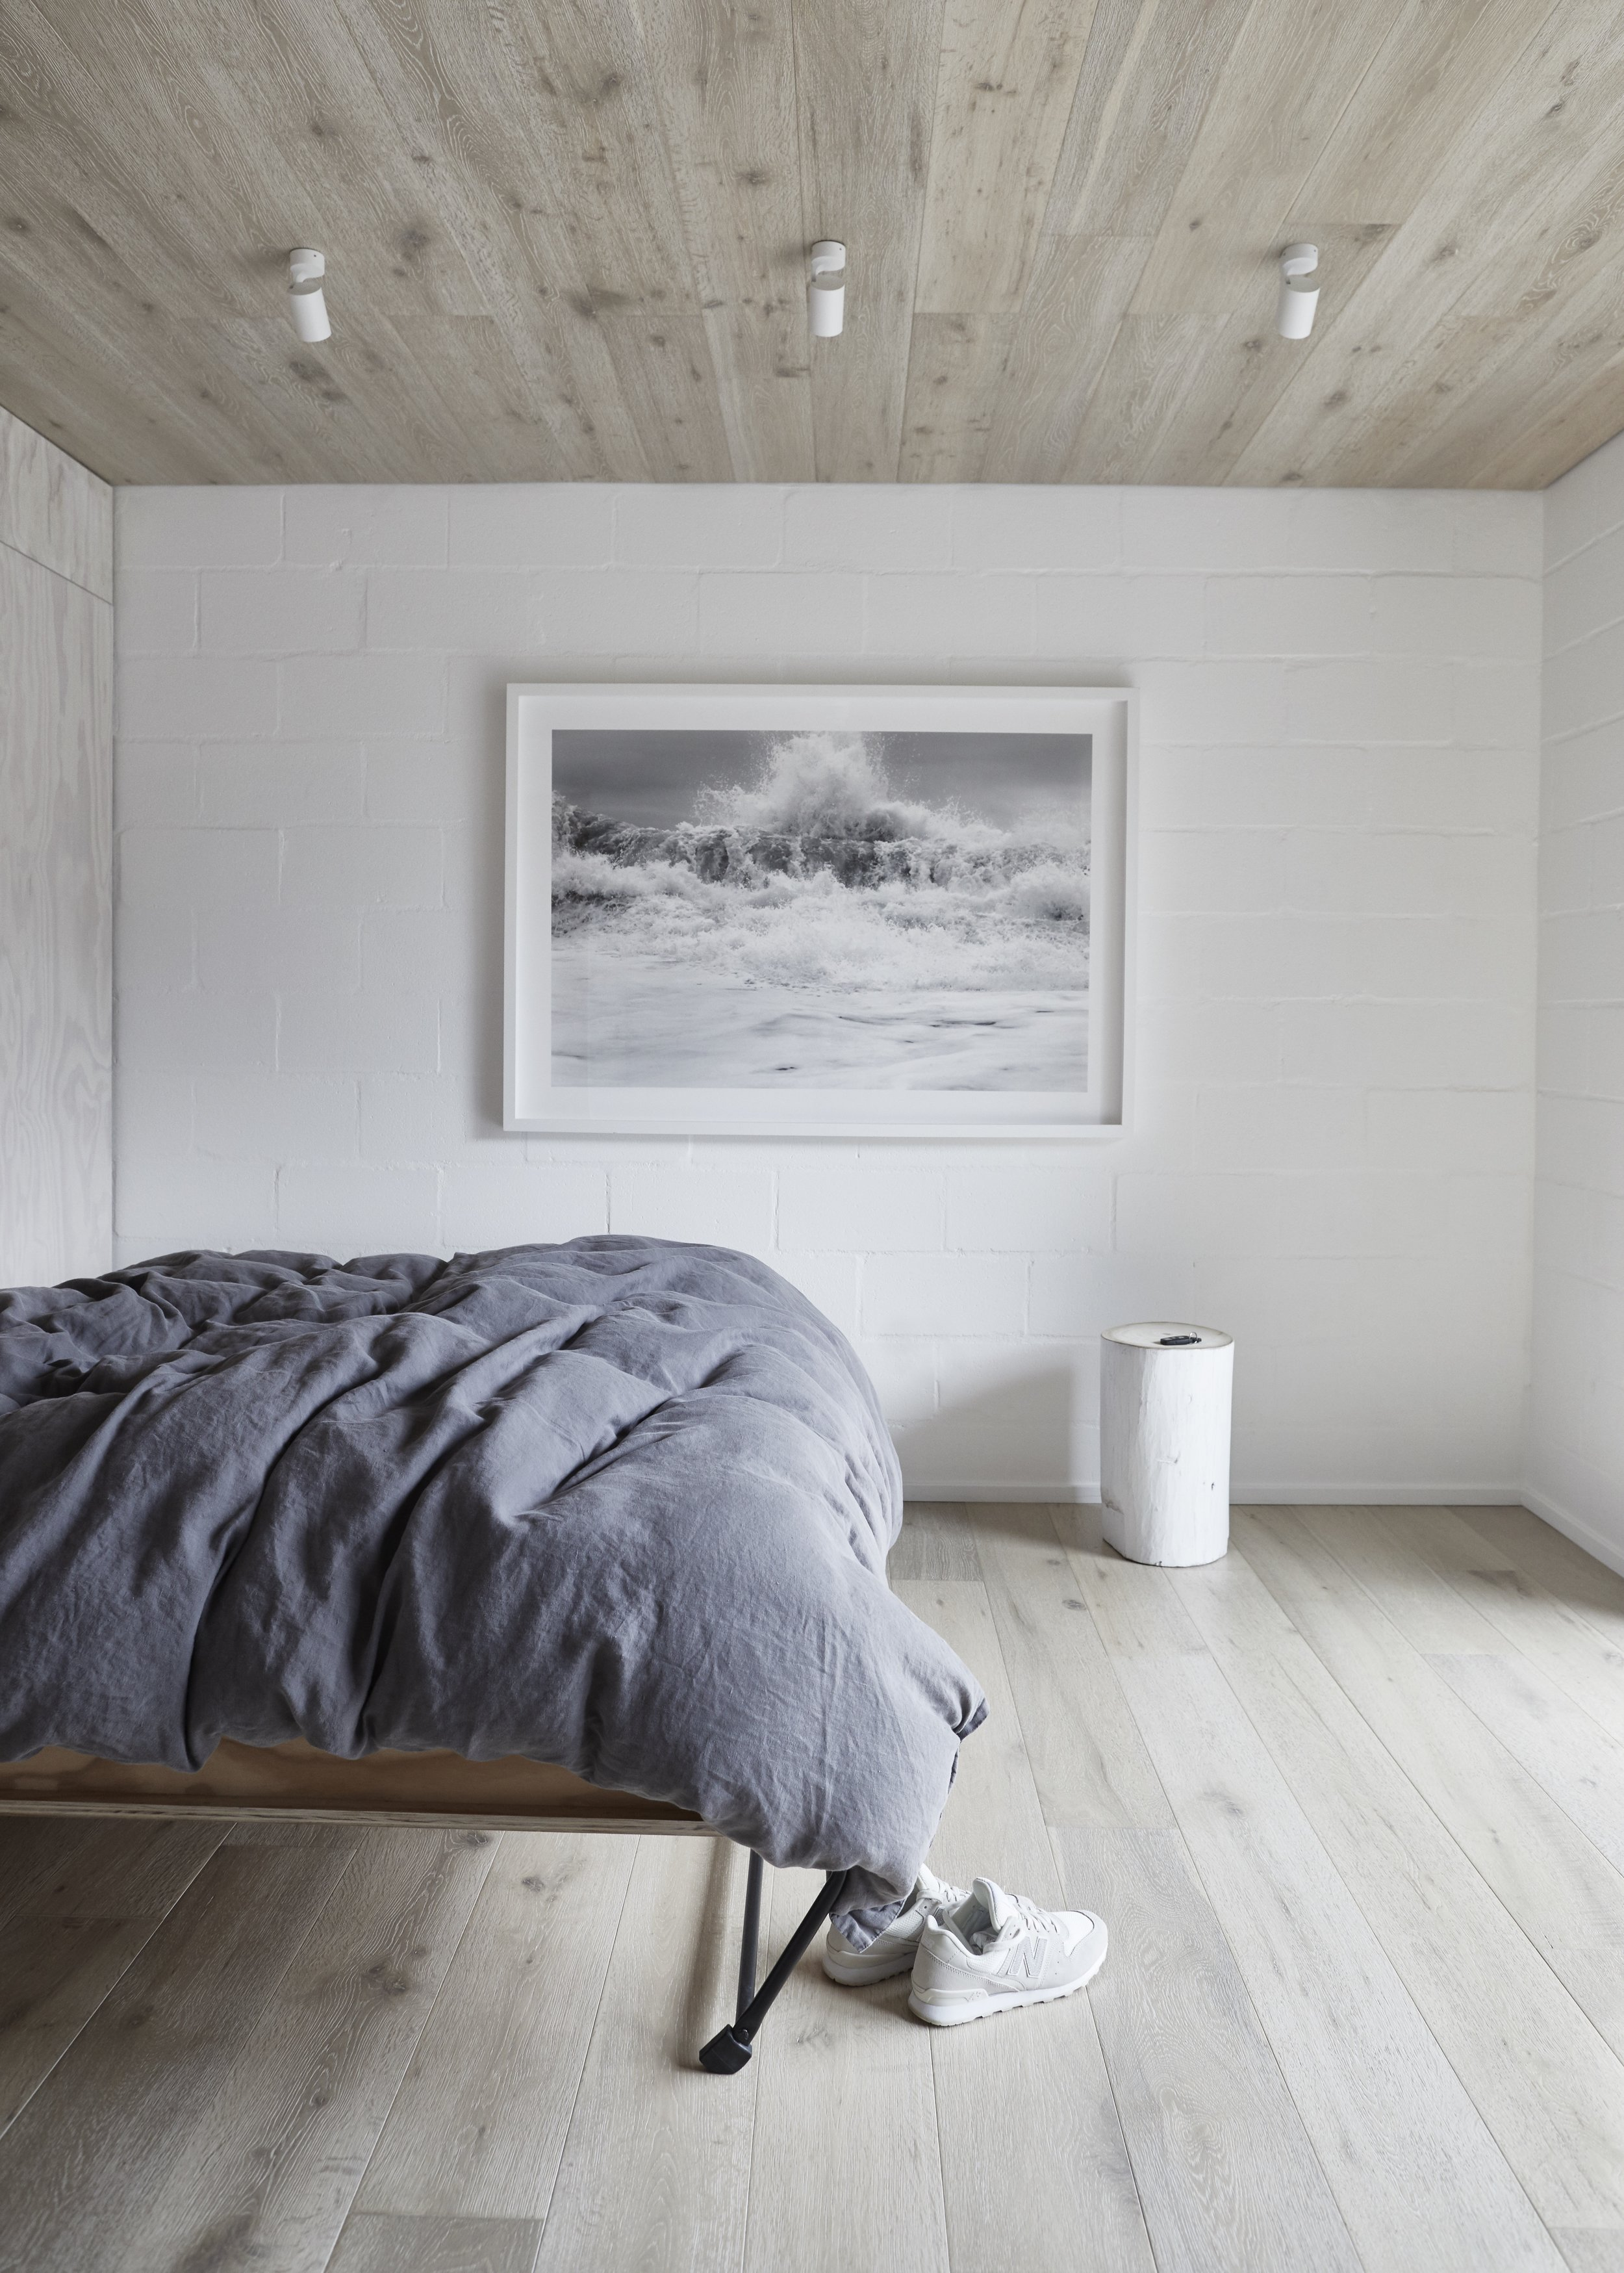 The clean and simple bedroom space. Photo - Monique Easton.